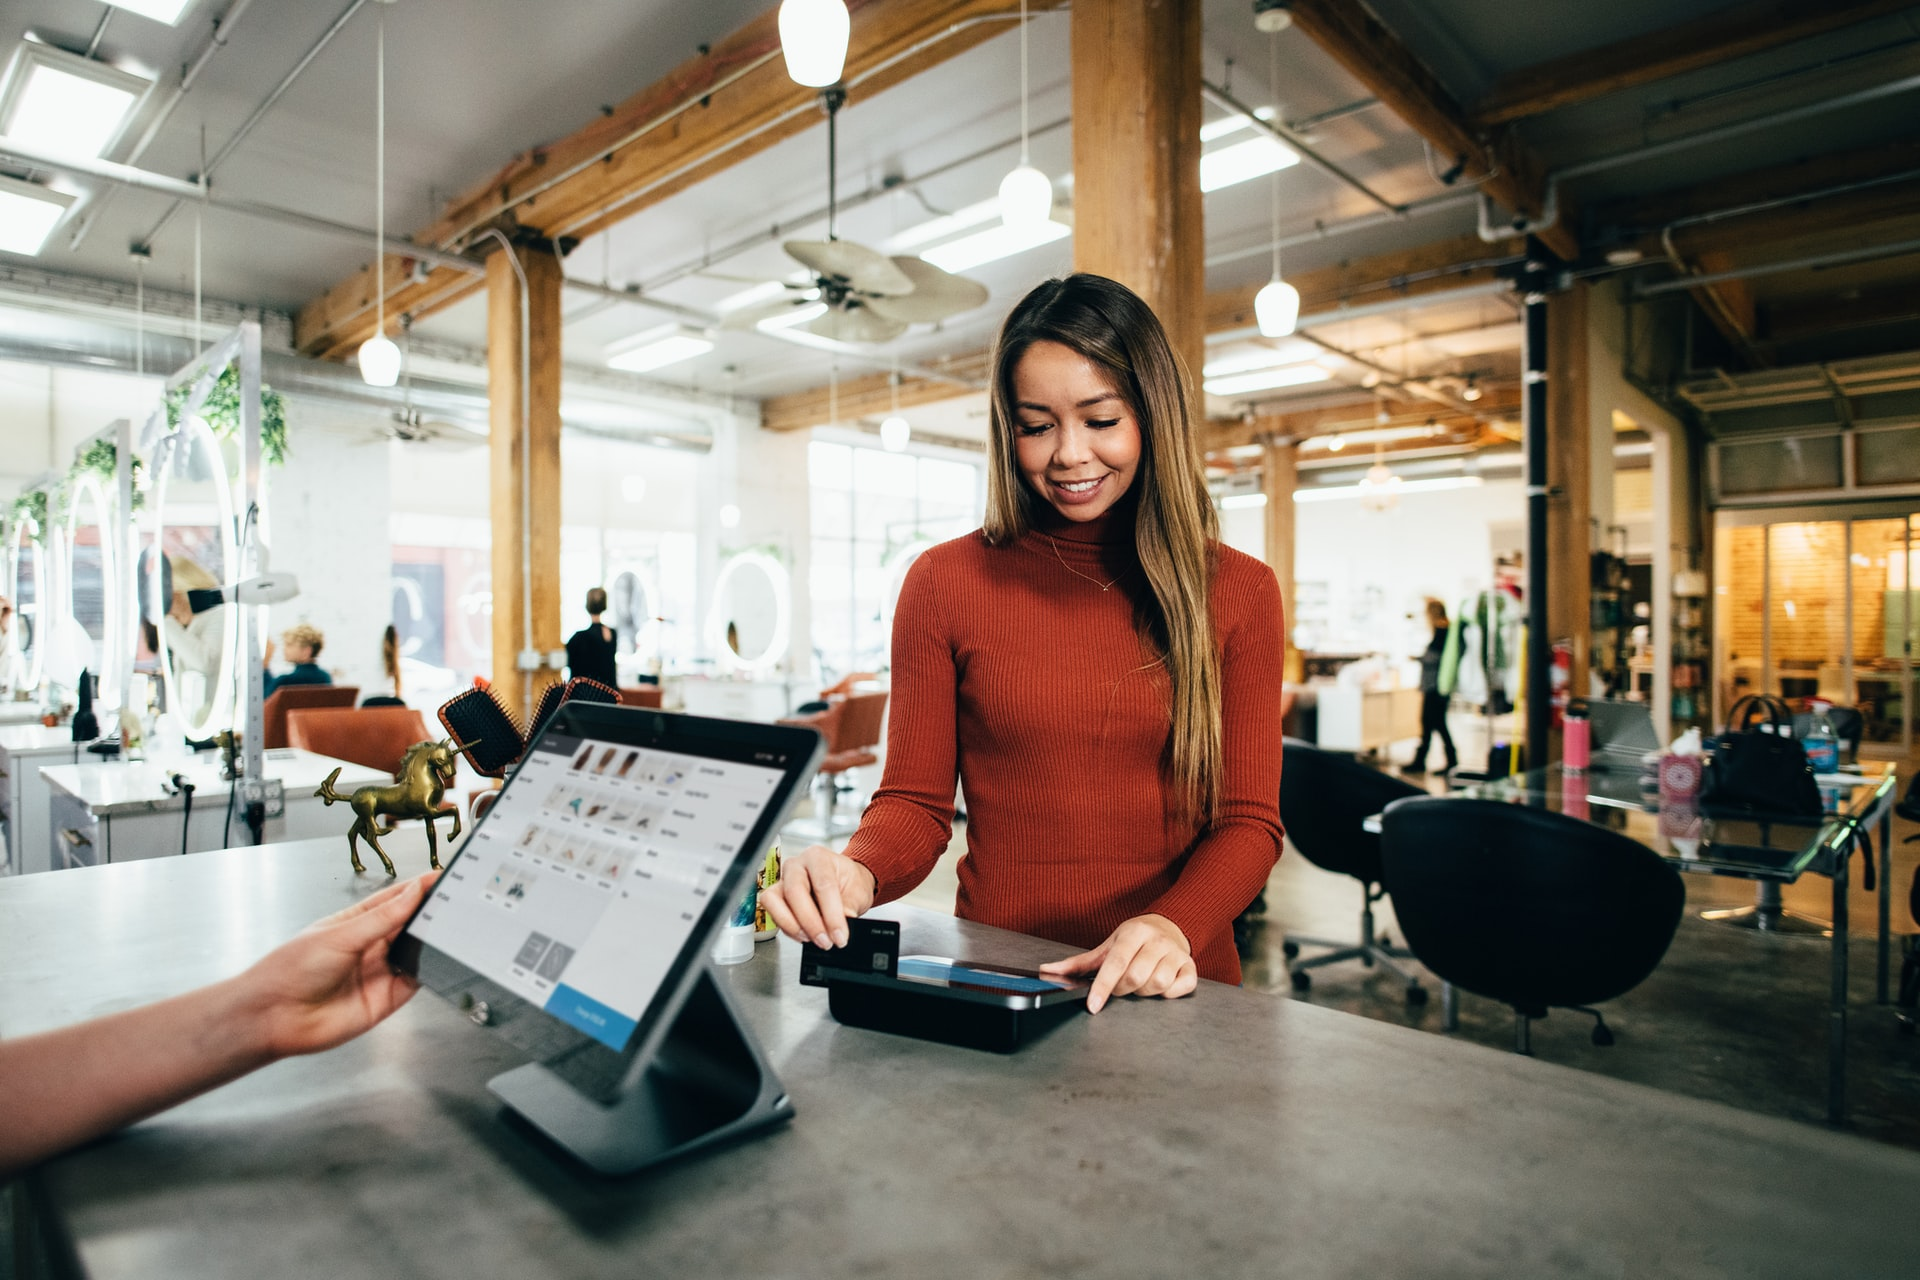 How Much Does a POS System Cost for a Restaurant in Vancouver?